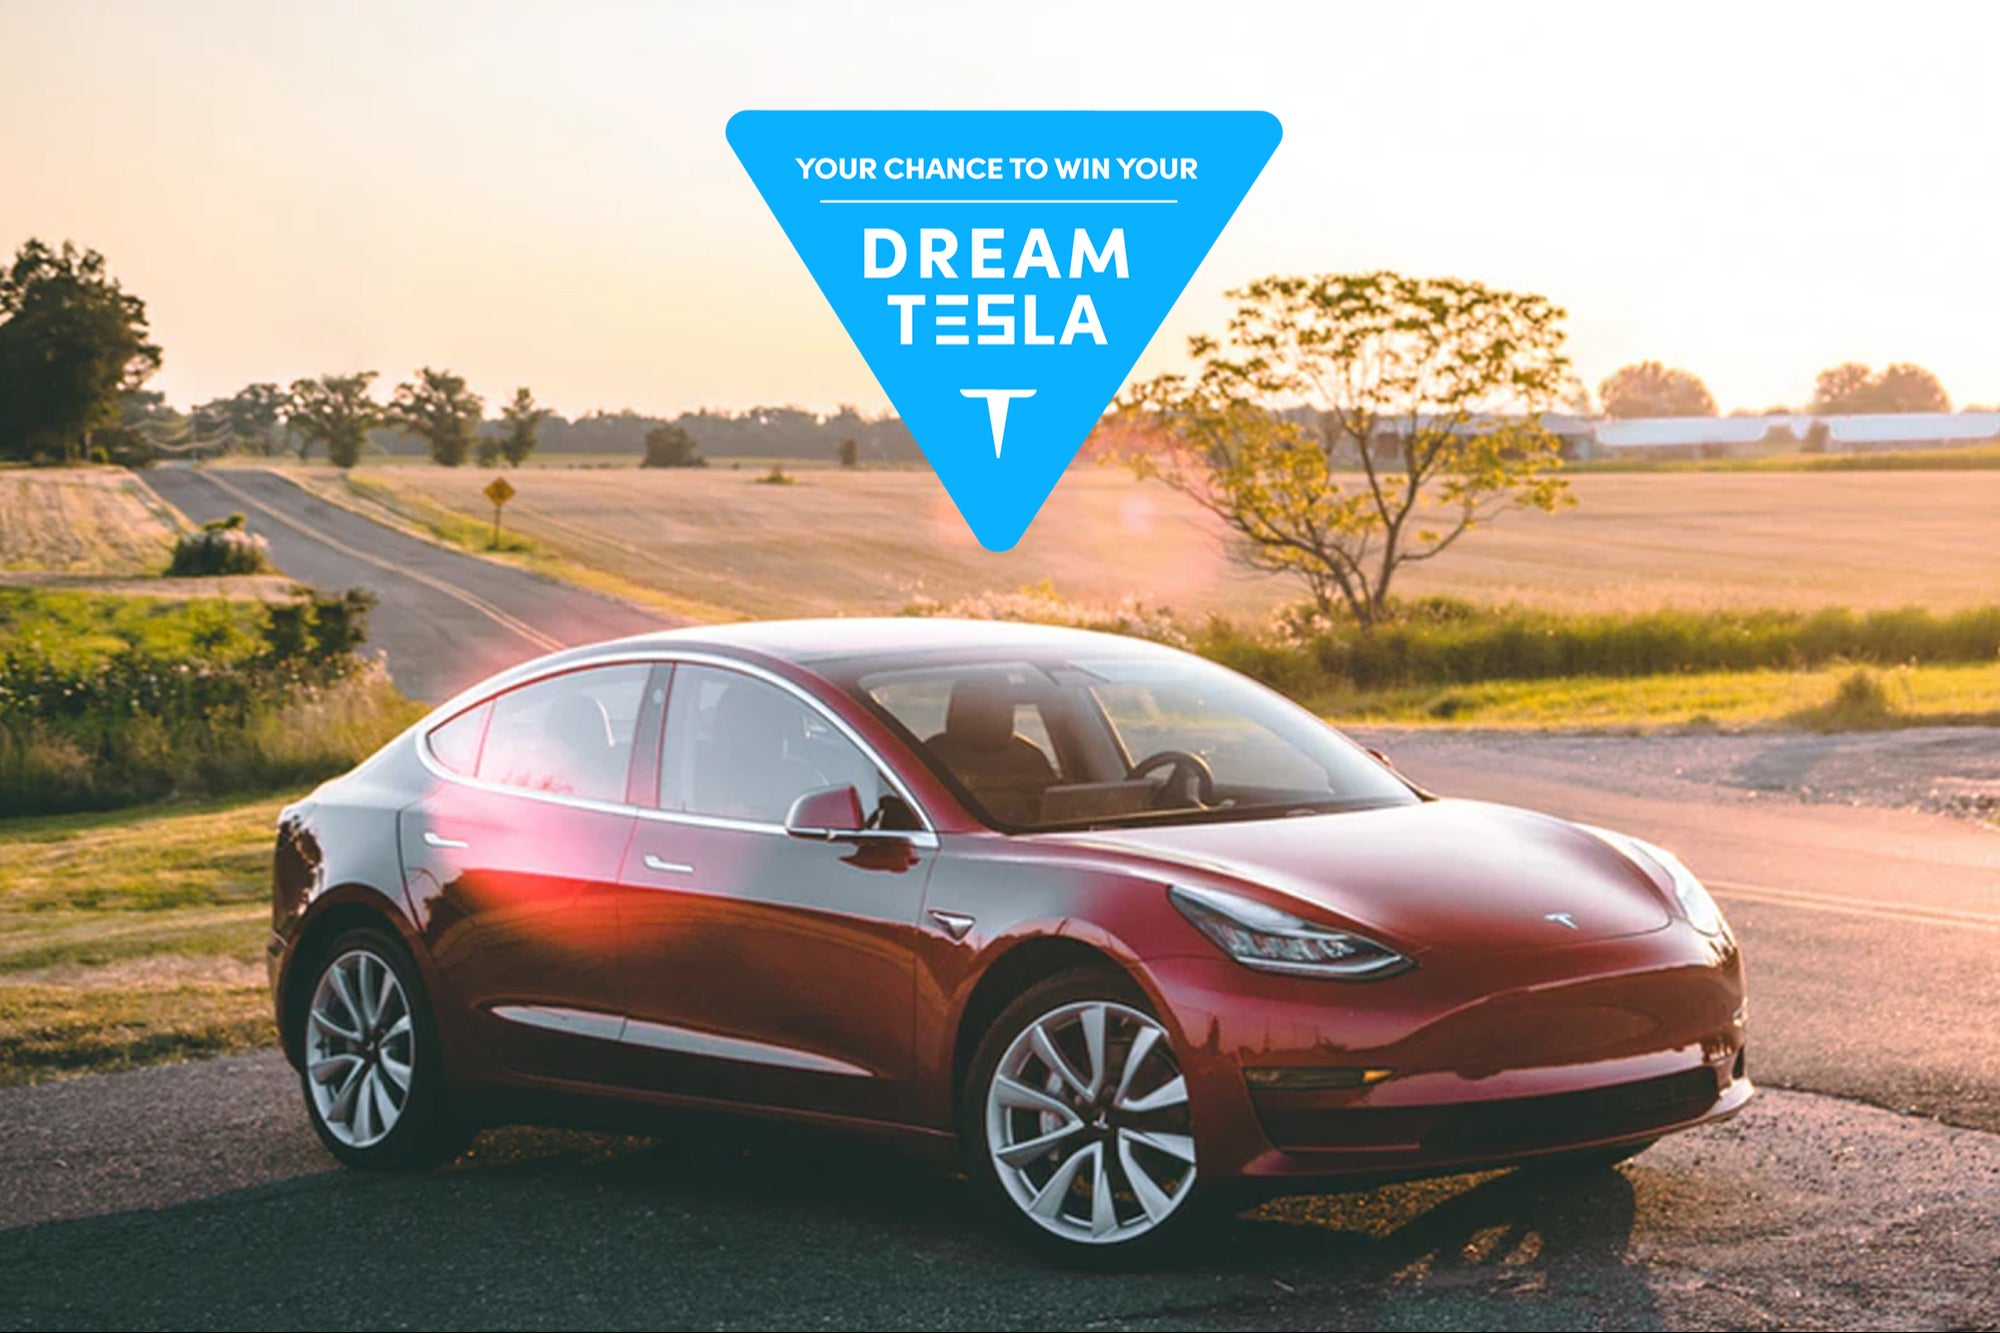 Here's How You Could Win a 2020 Tesla Model 3 For Free